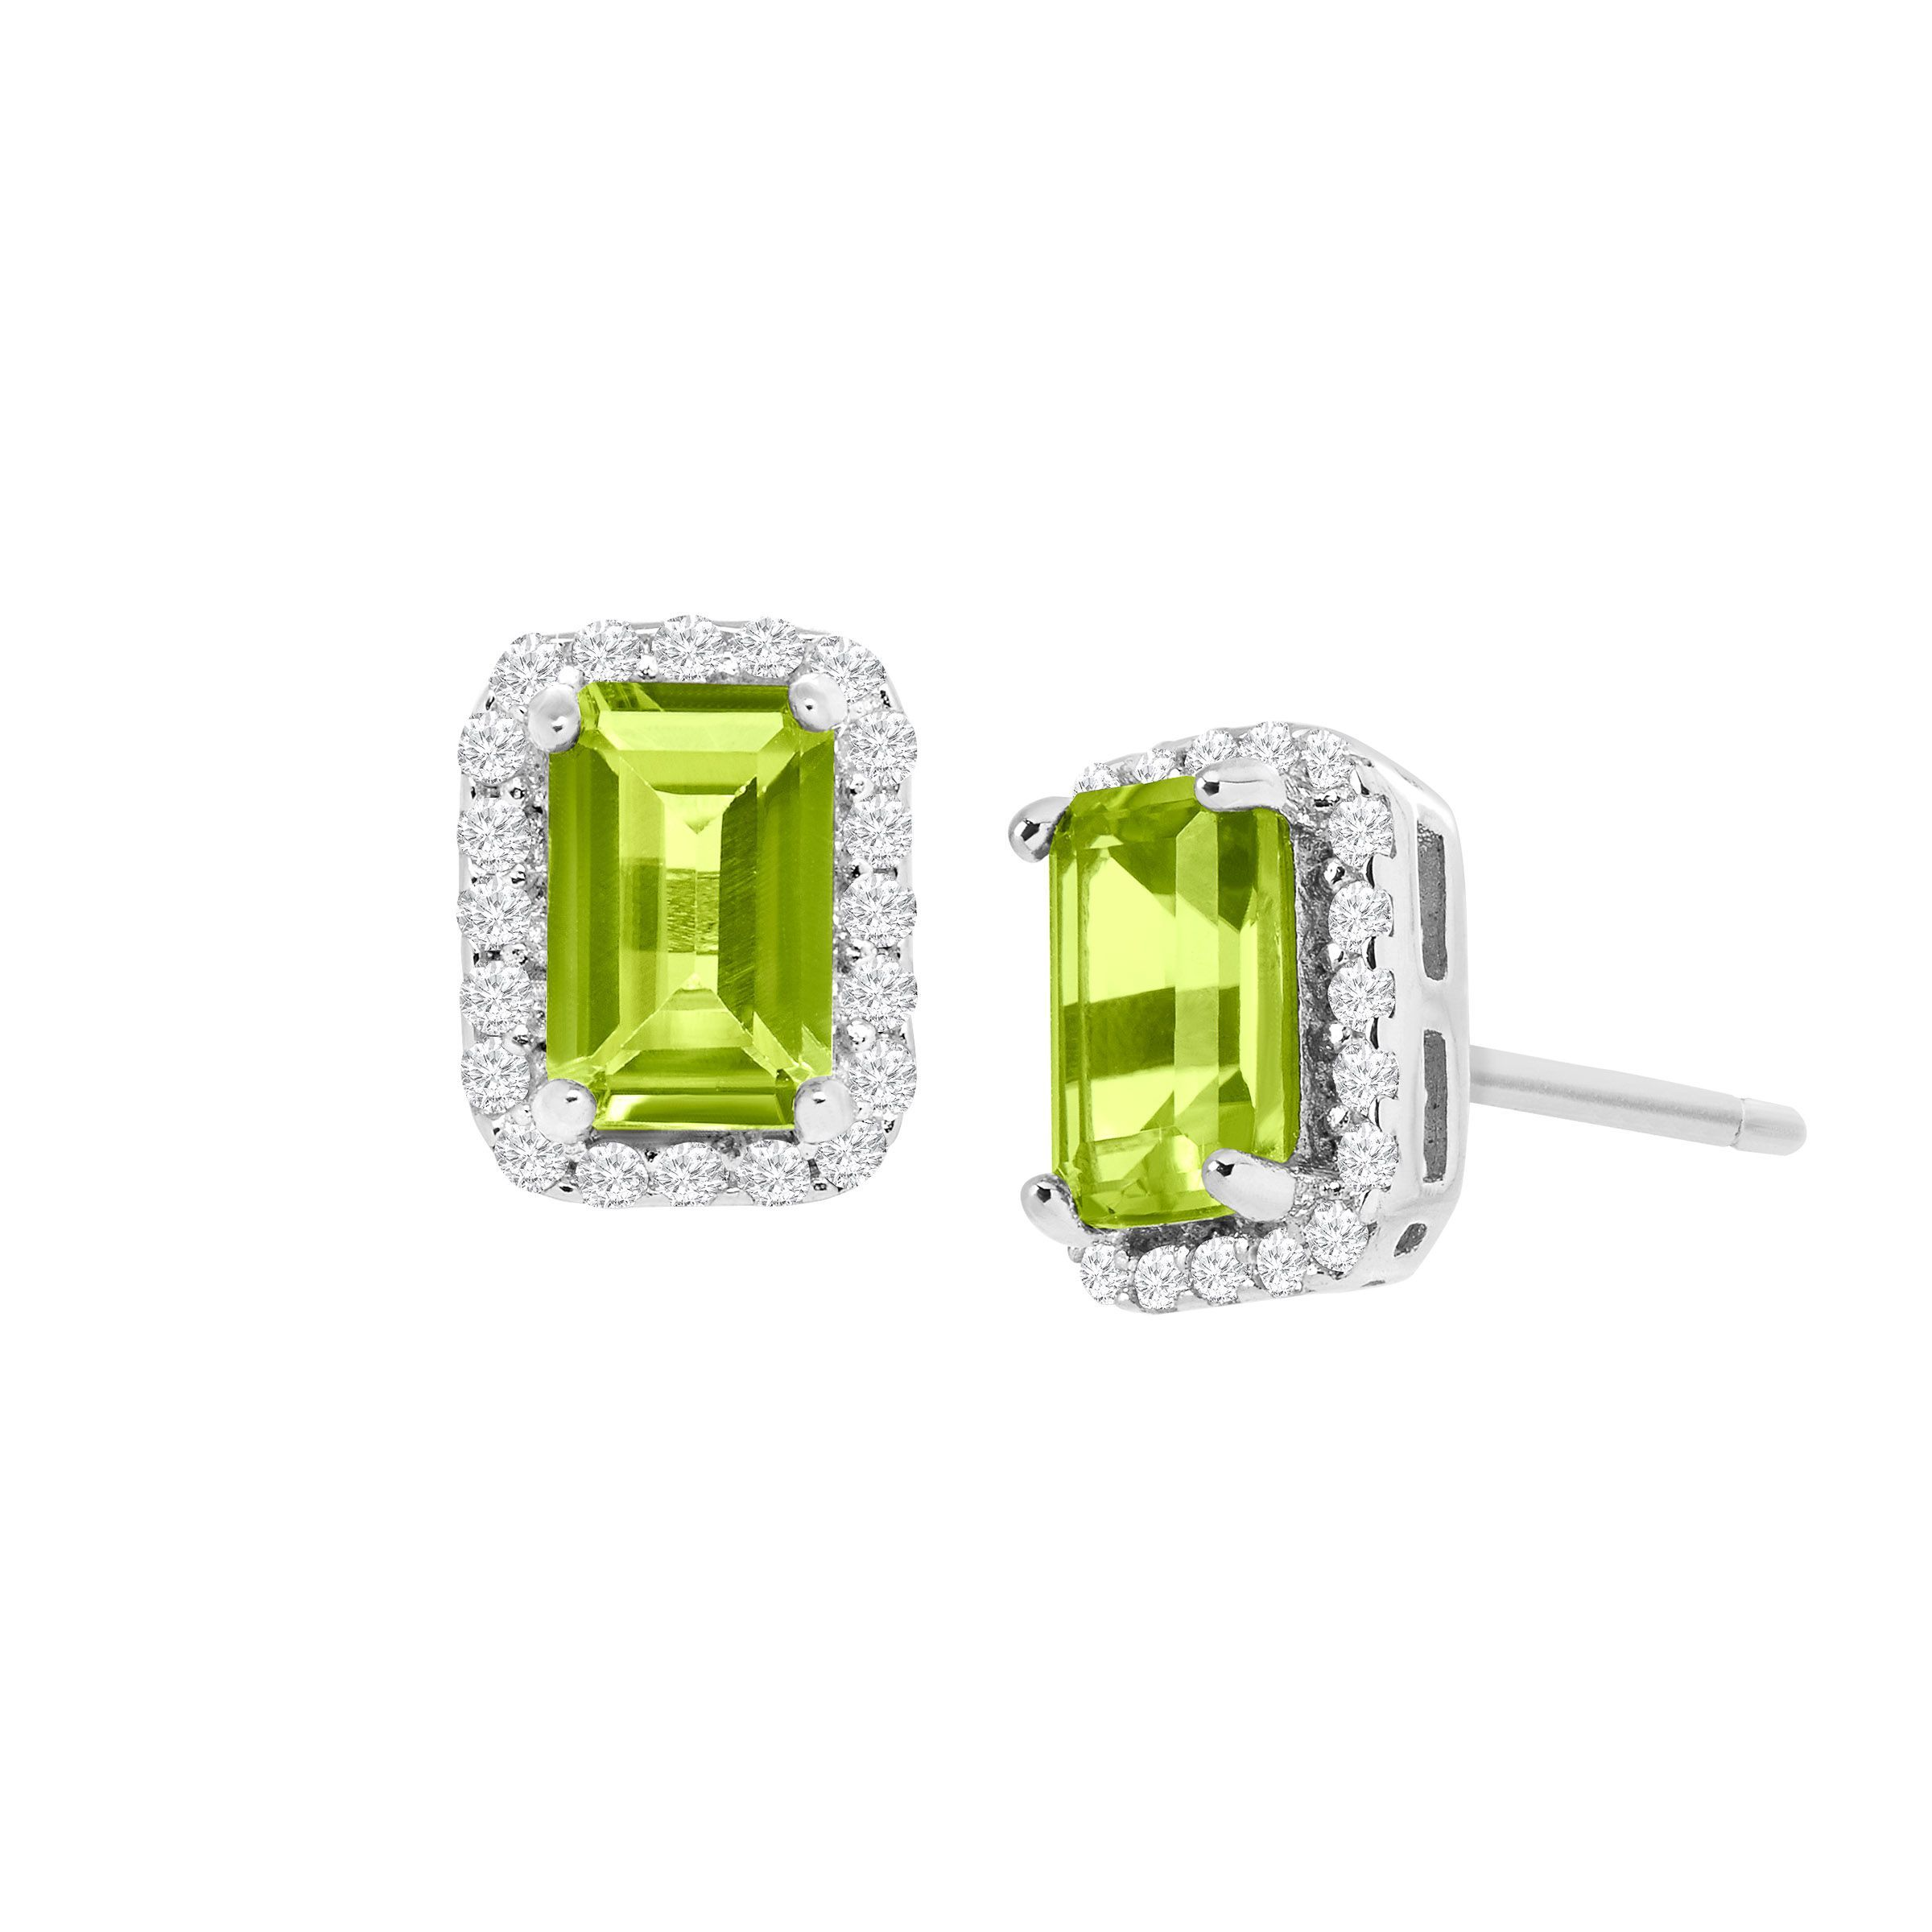 Details About 1 5 Ct Natural Peridot Stud Earrings With Cubic Zirconia In Sterling Silver